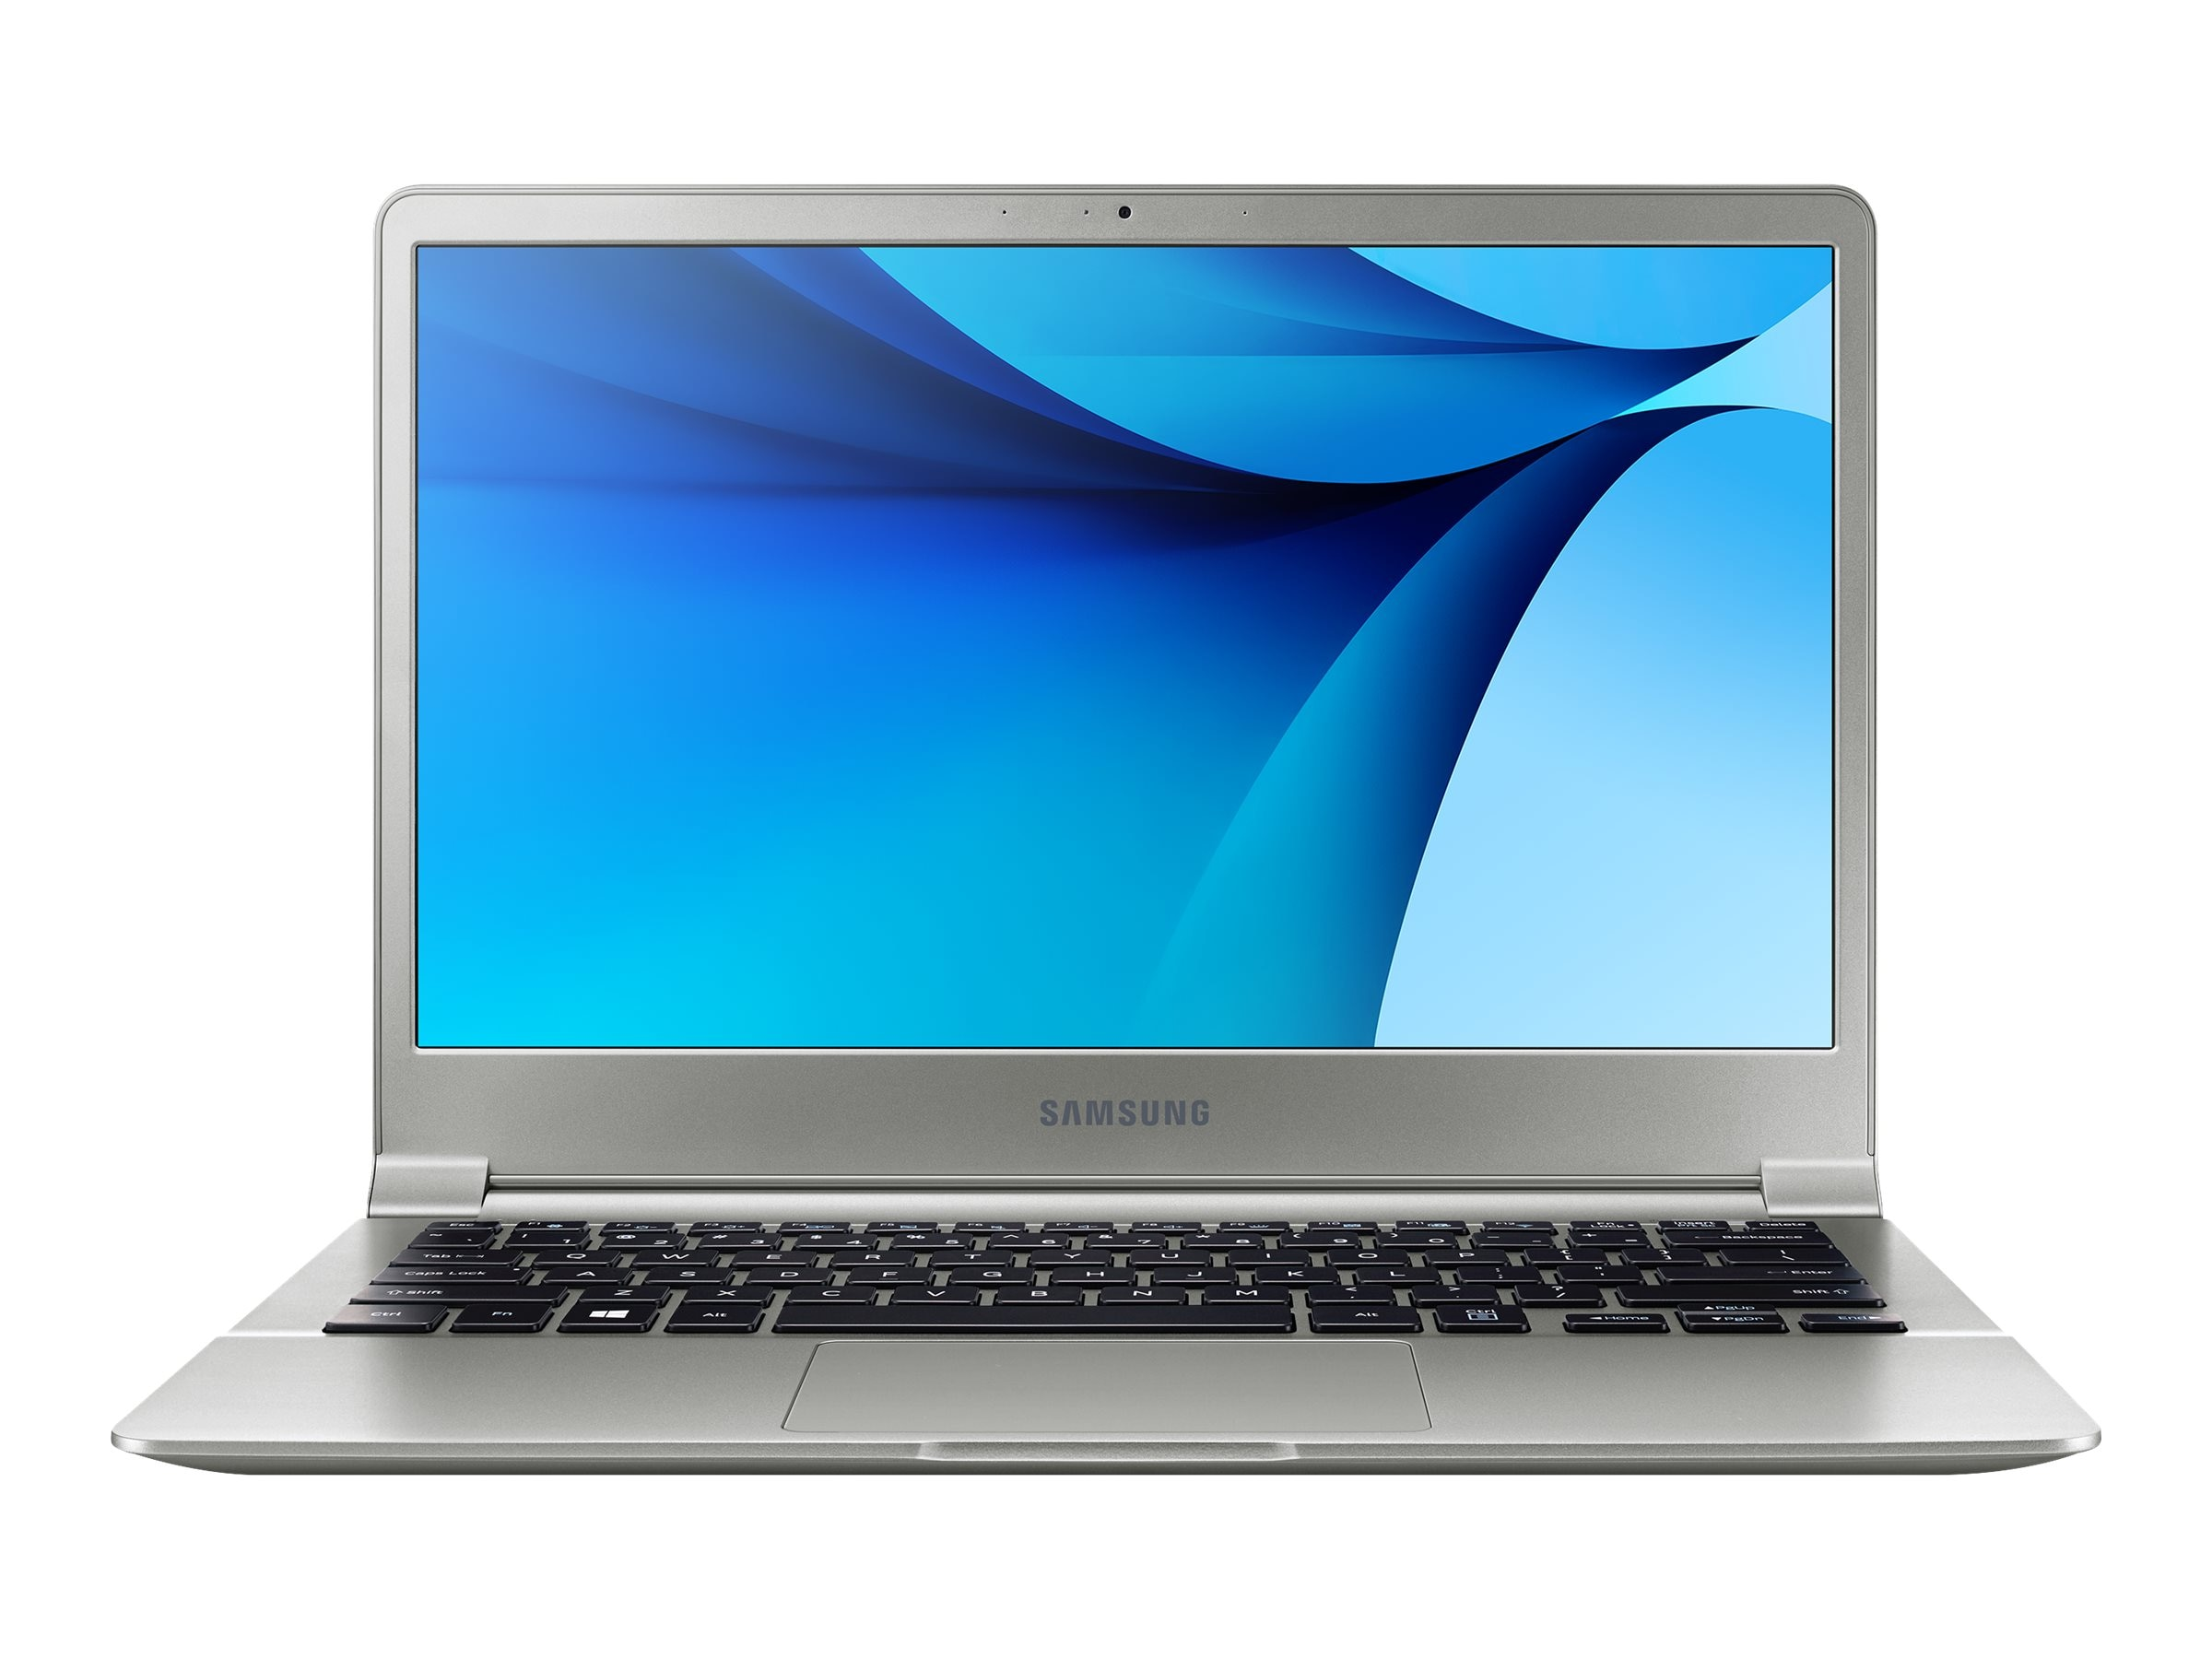 Samsung Notebook PC Core i7-6500U 8GB 256GB 13.3, NP900X3L-K04US, 31391753, Notebooks